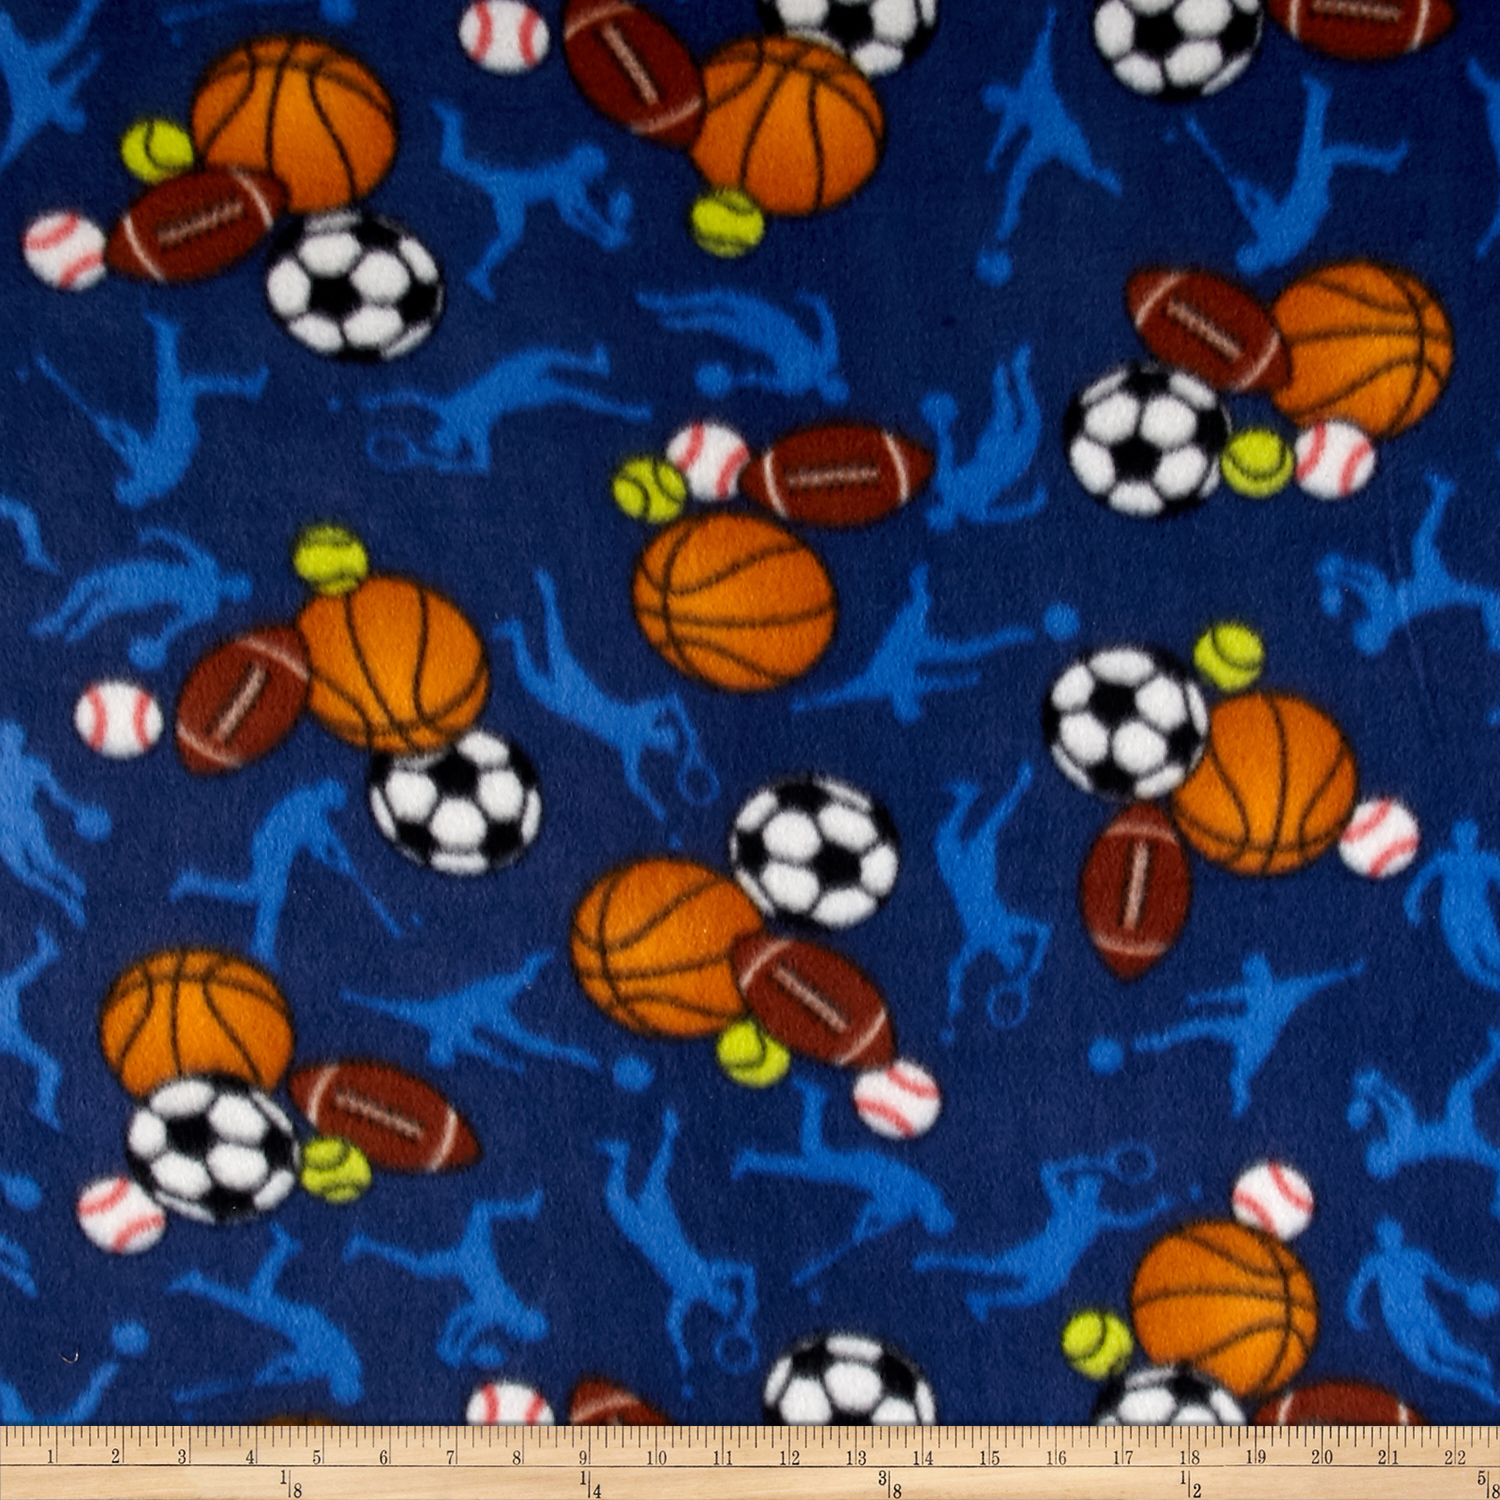 INOpets.com Anything for Pets Parents & Their Pets Polar Fleece All Sports Dark Blue Fabric